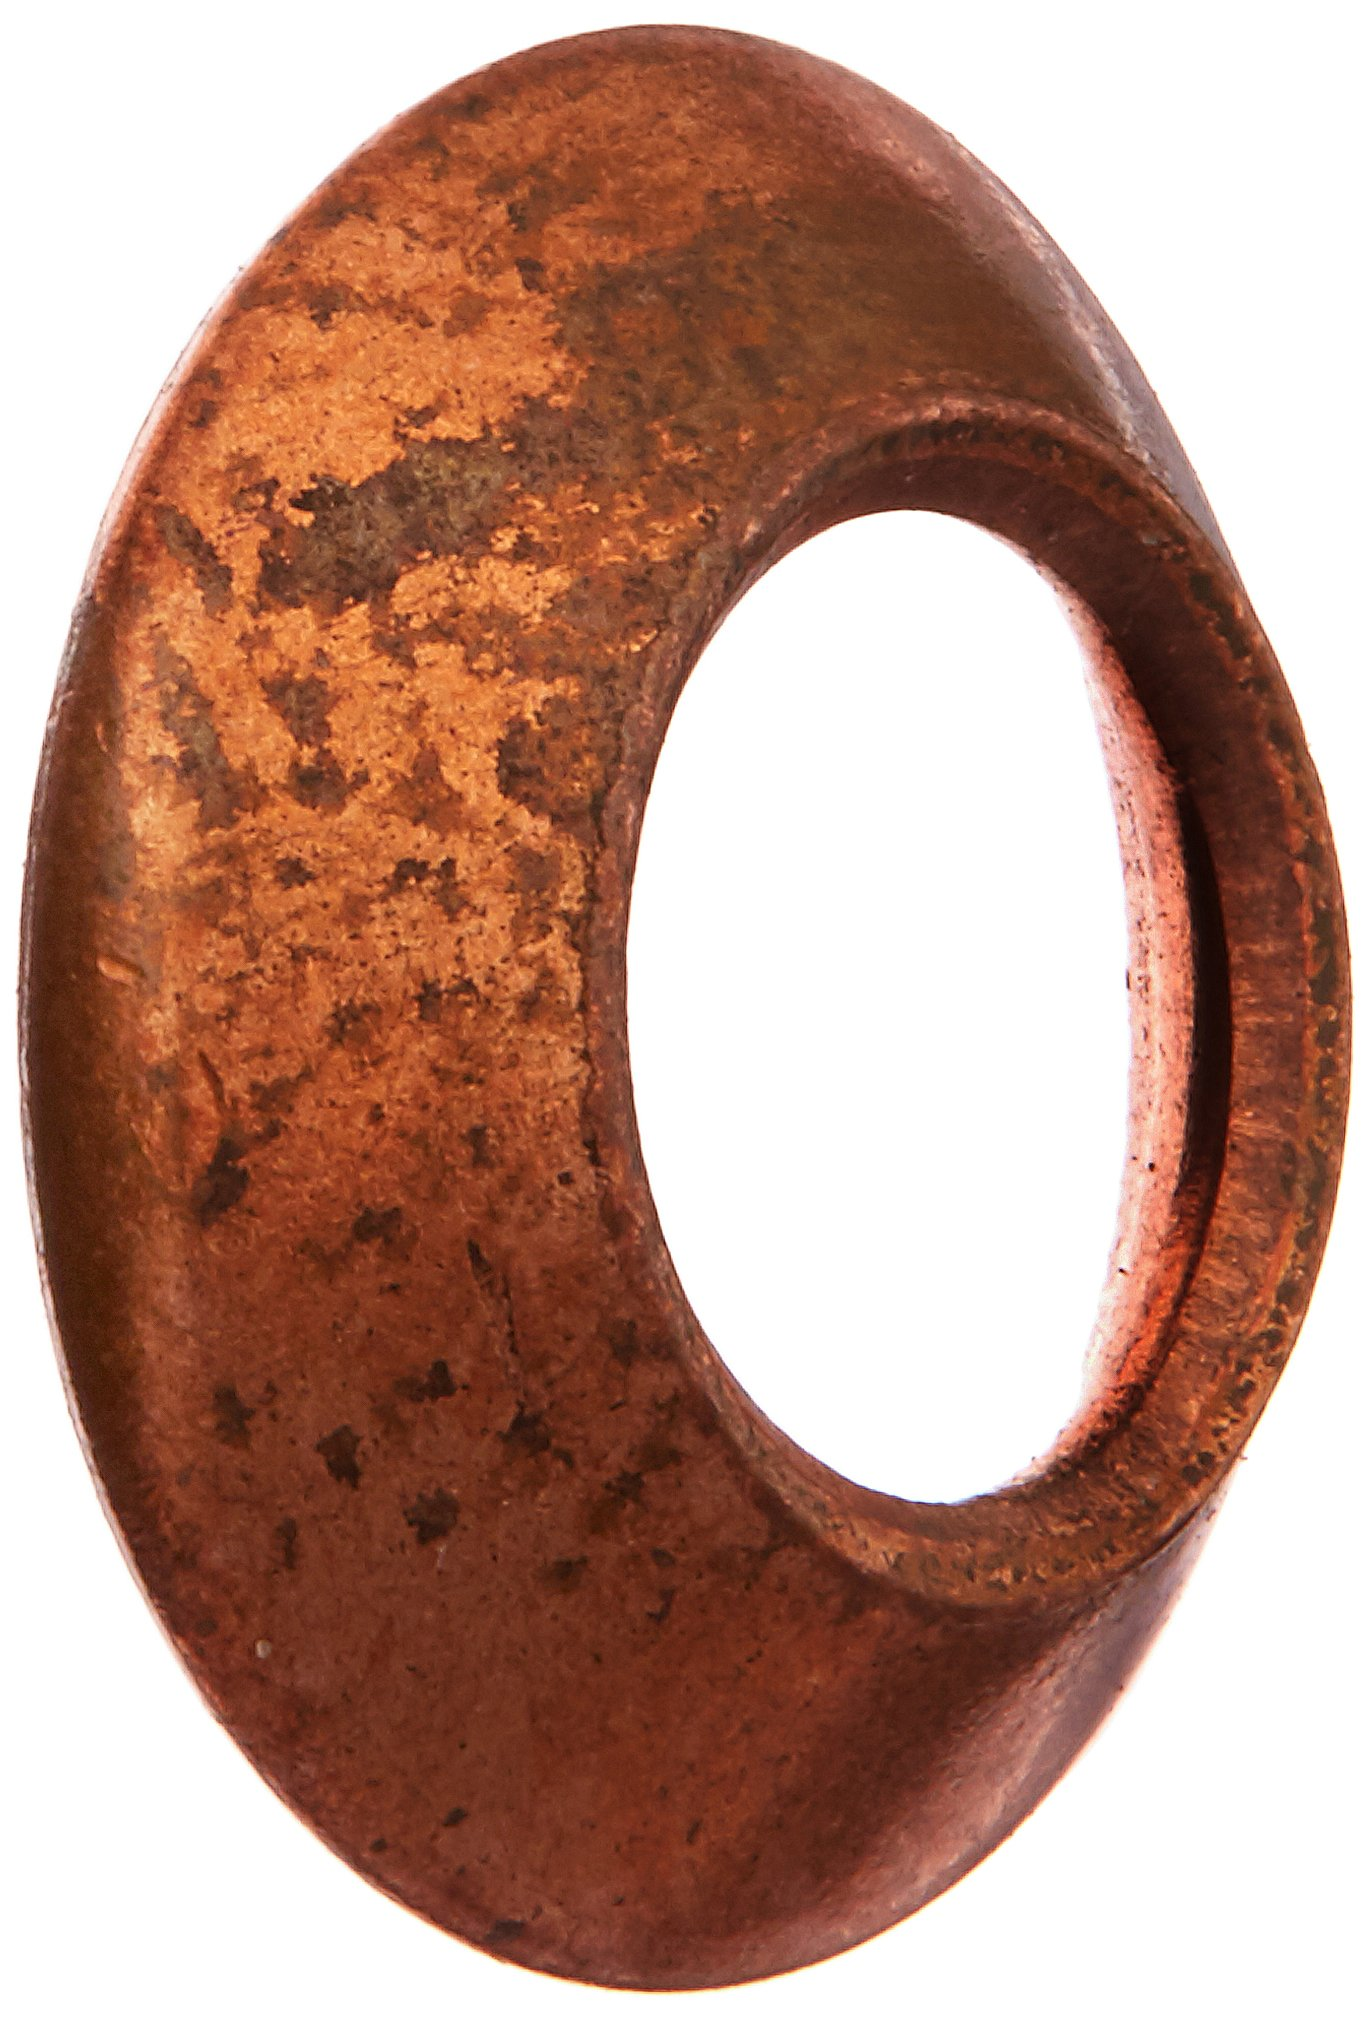 Parker Hannifin 2GF-4 Flare Gasket, 45 Degree Copper Flare Fitting, 1/4'' Tube Size